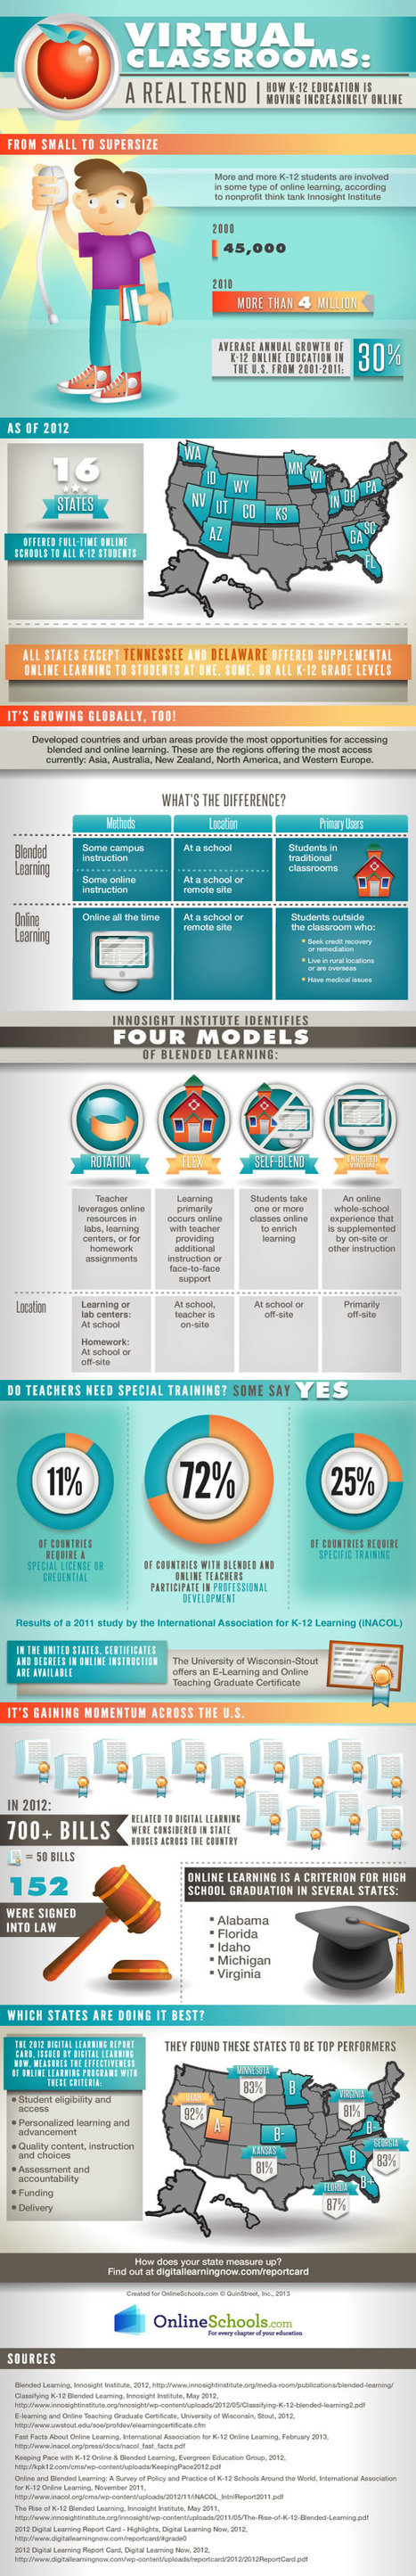 The Teacher's Quick Guide To Blended Learning [Infographic] | Teaching Ideas & Resources | Scoop.it